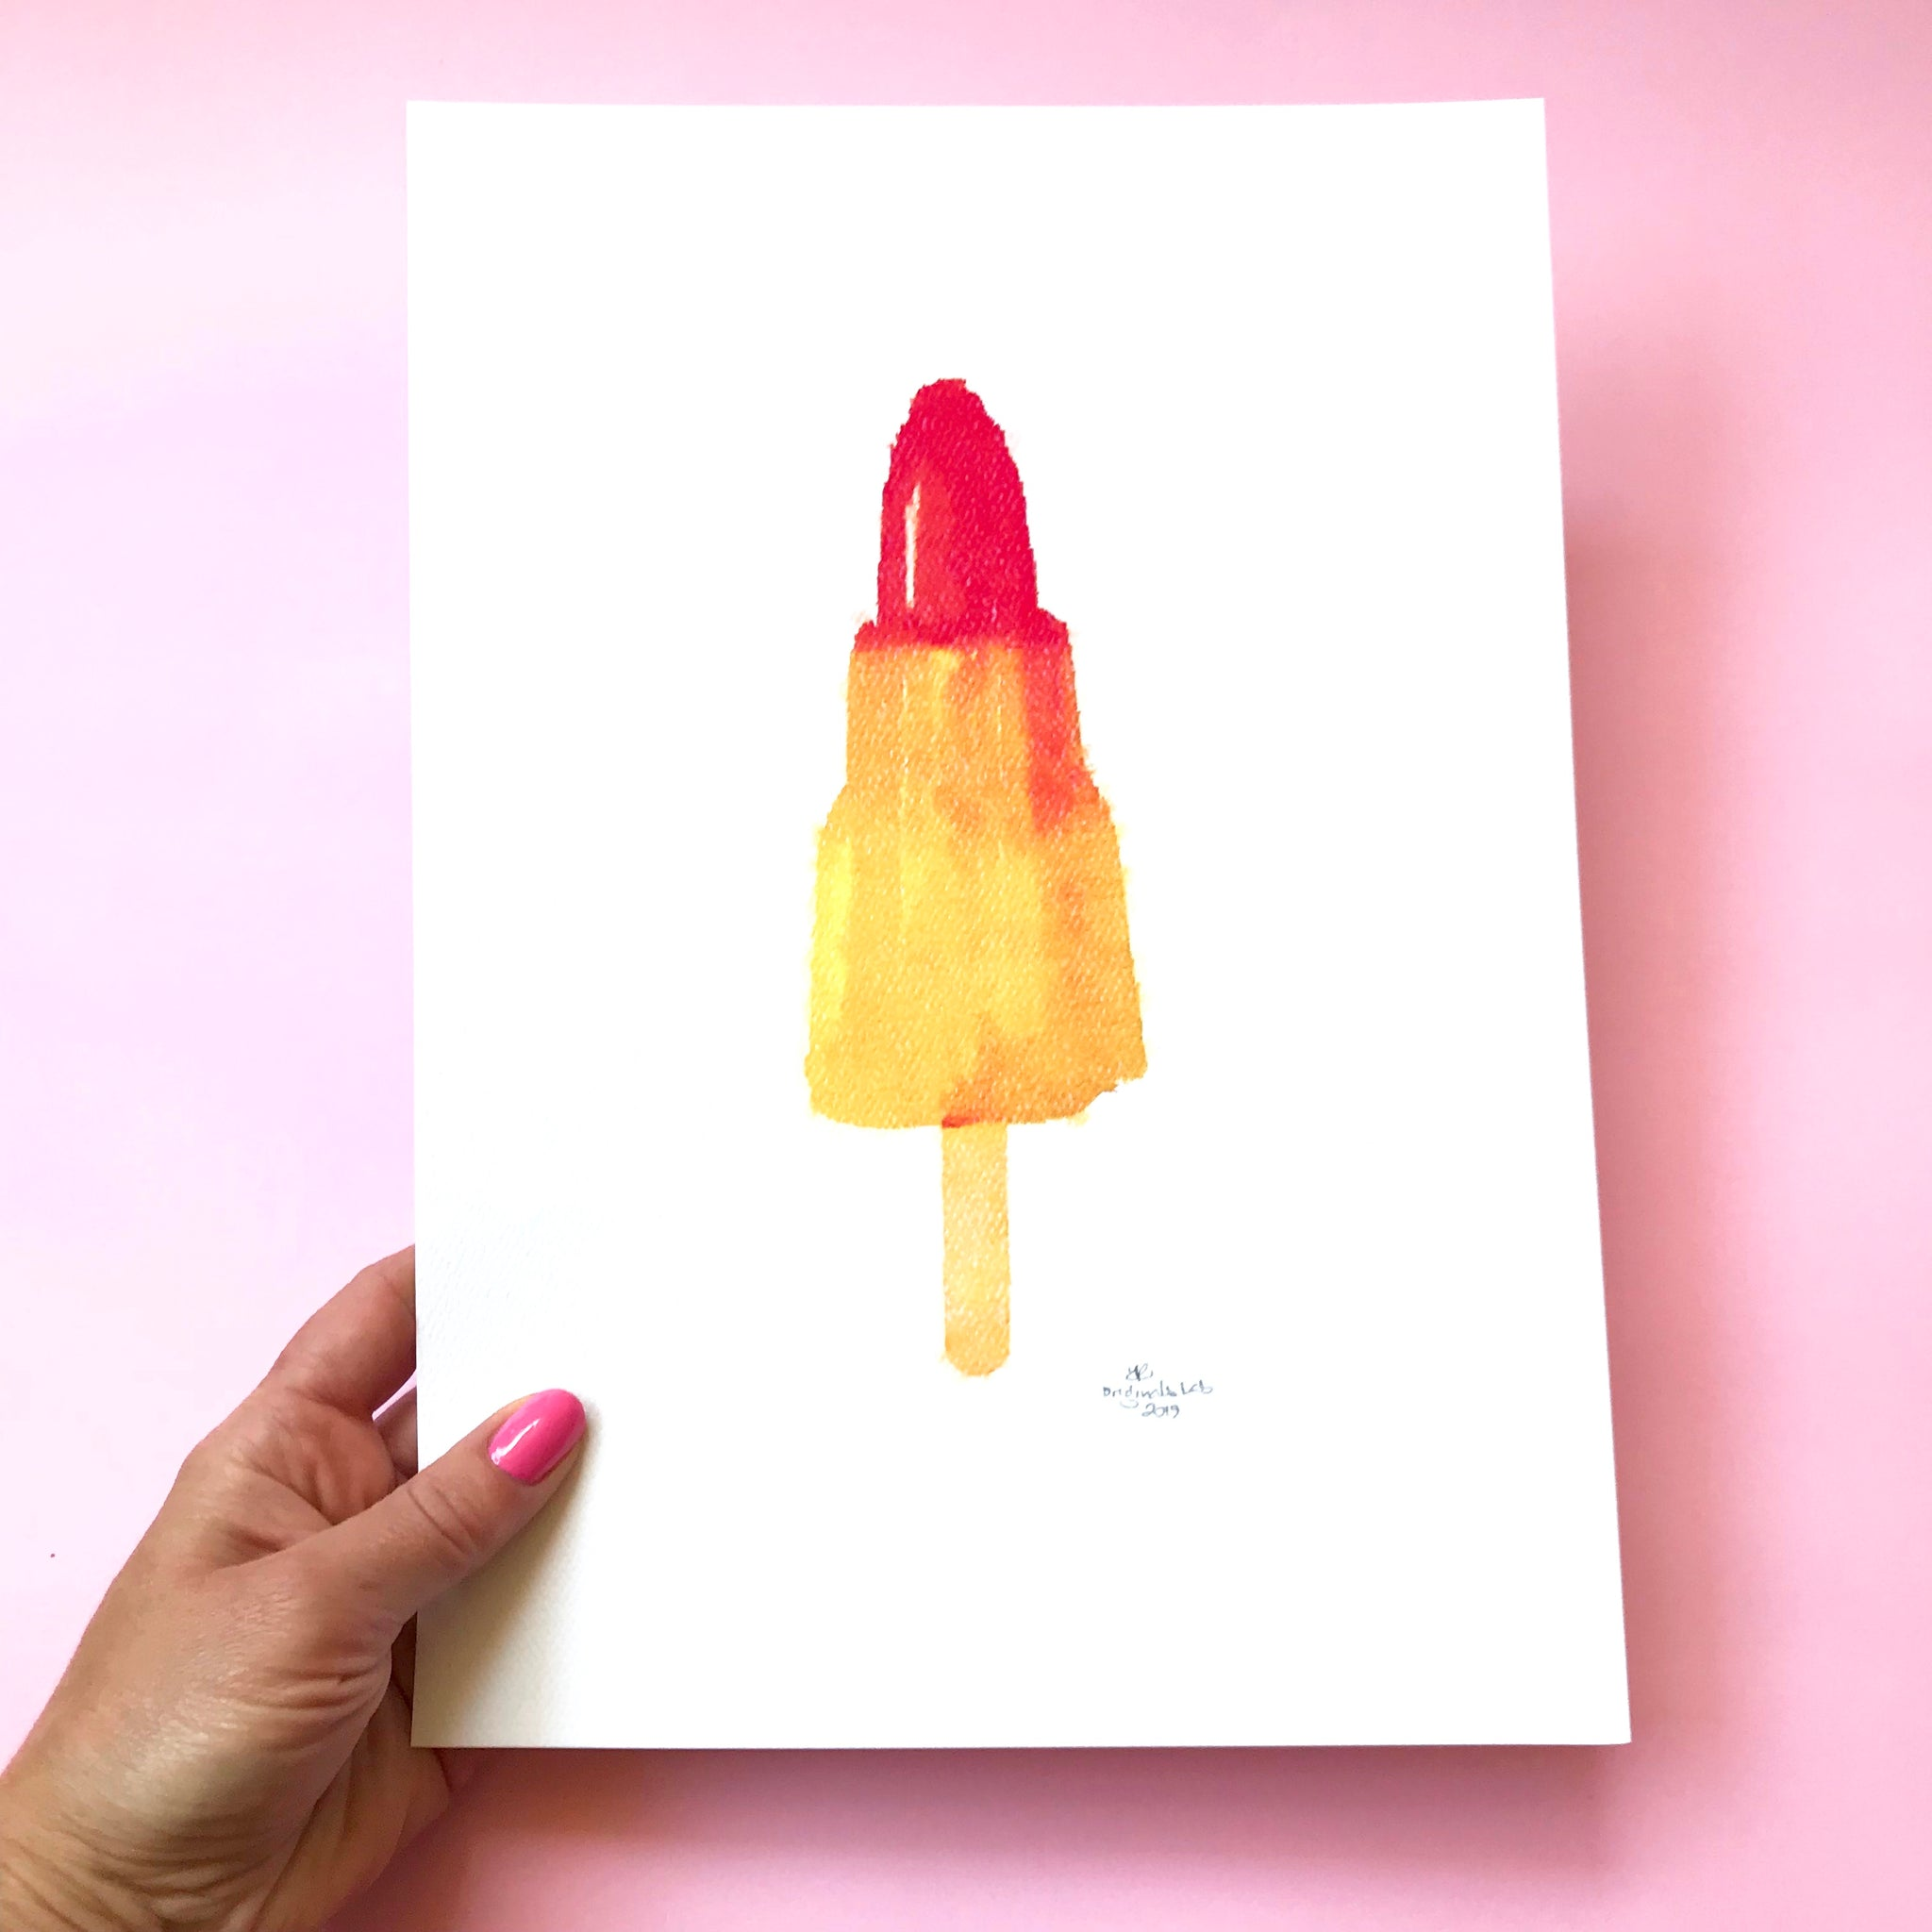 Rocket Icy Lolly Digital Print.  Designed in Australia